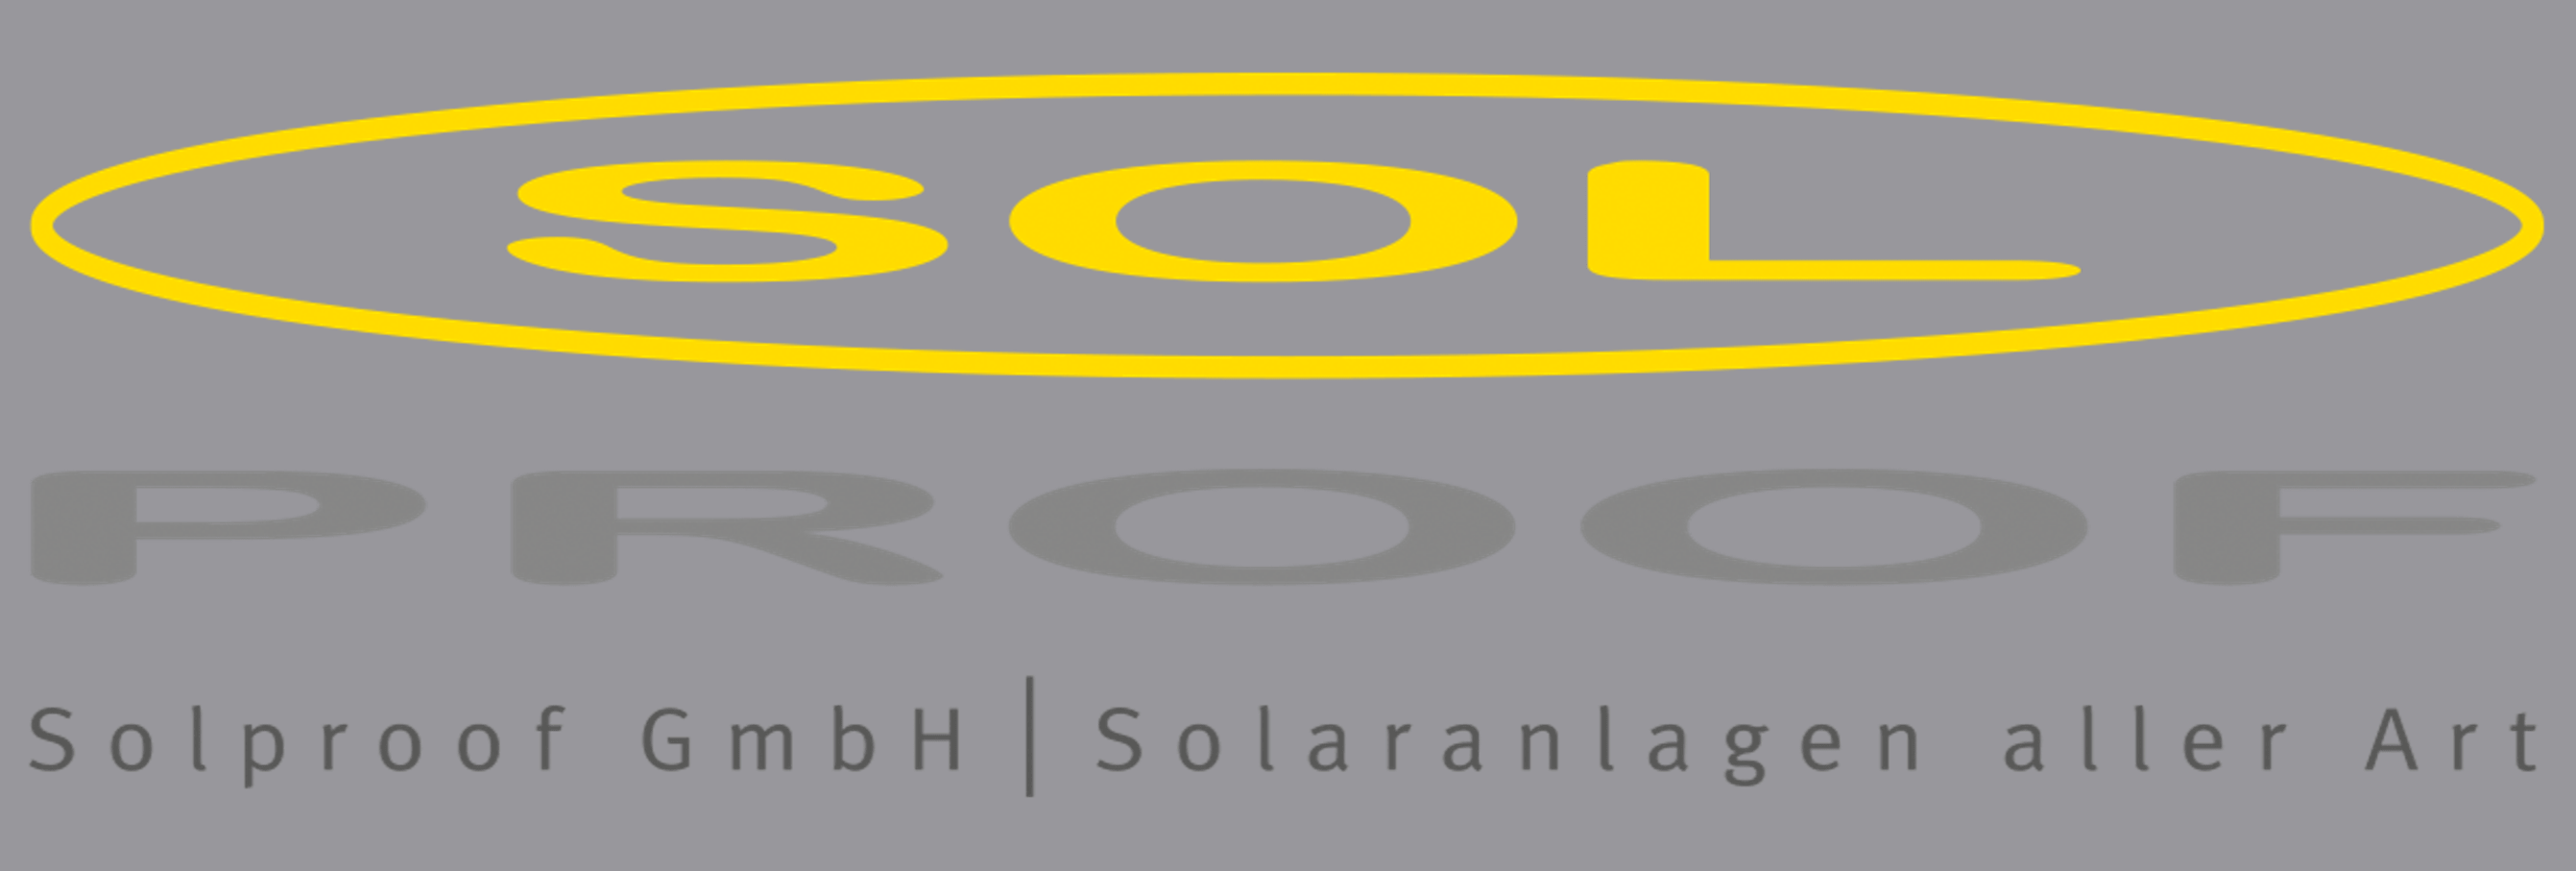 Solproof GmbH